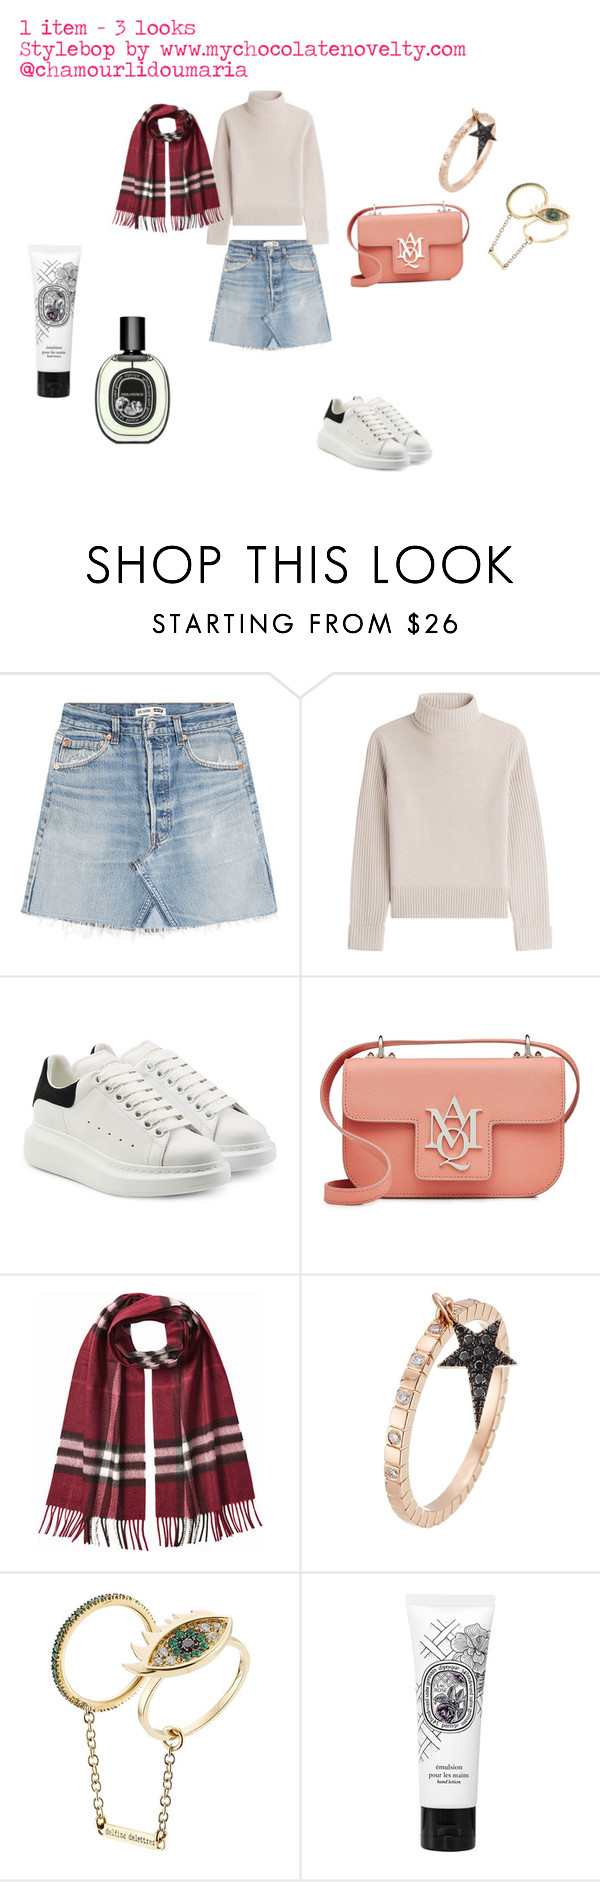 """One item - three looks"" by maria-chamourlidou ❤ liked on Polyvore featuring RE/DONE, Vanessa Seward, Alexander McQueen, Burberry, Diane Kordas, Delfina Delettrez and Diptyque"